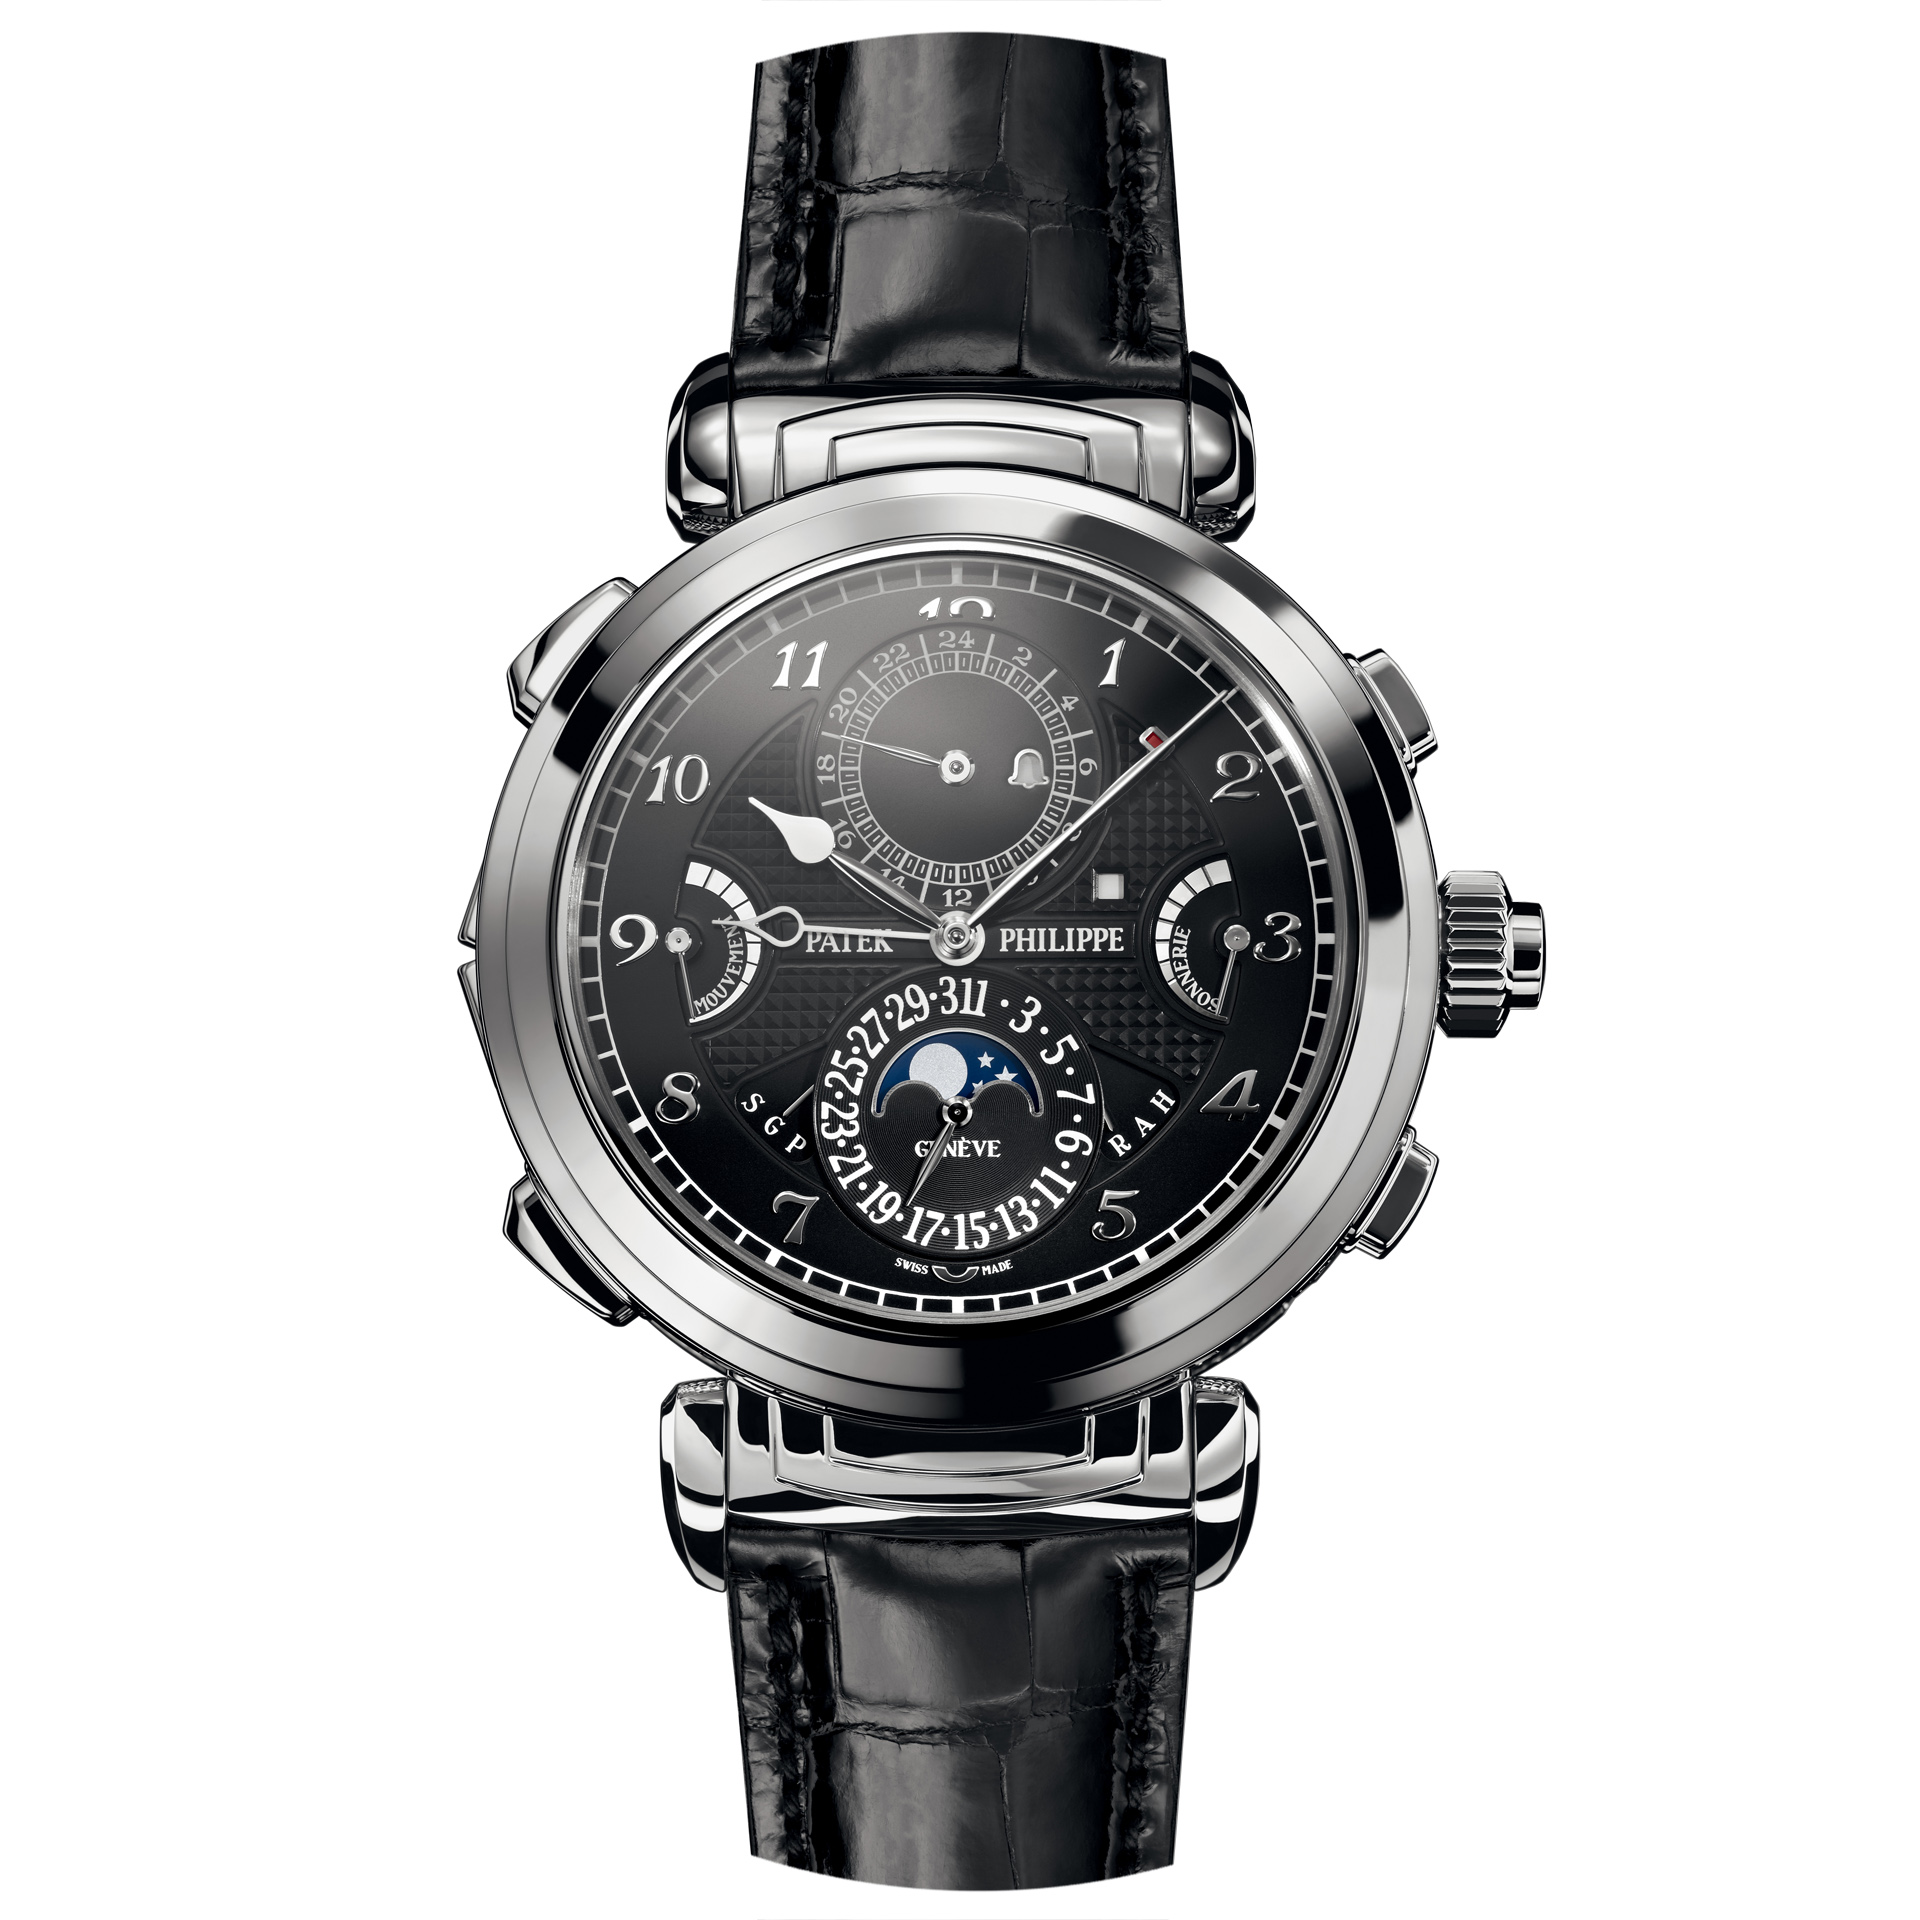 Patek Philippe Grand Complications Ref. 6300G-001 Grandmaster Chime